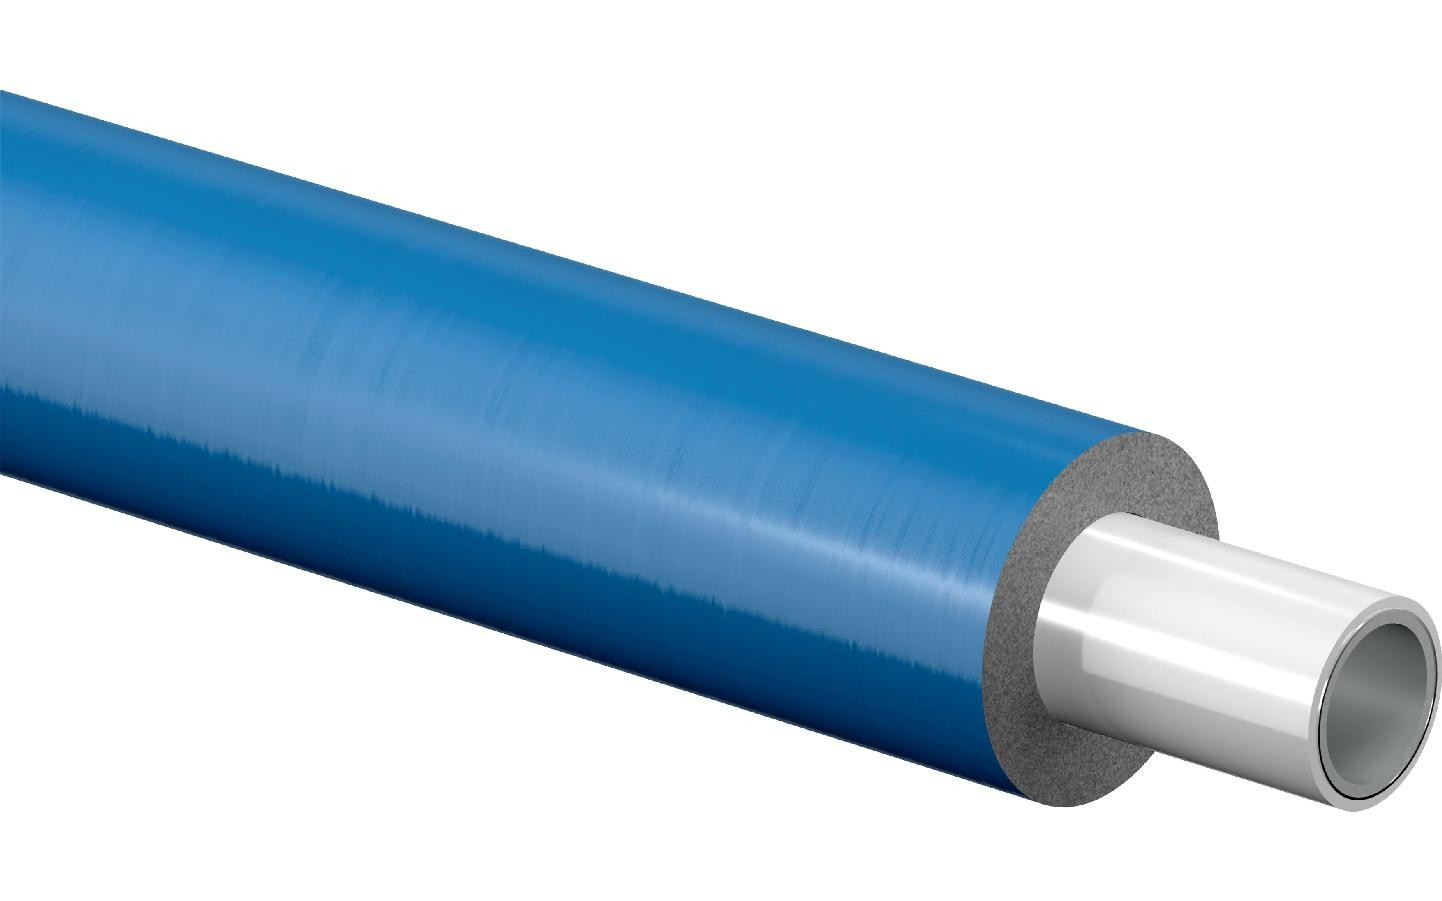 Image 1 of Uponor 25x2.5mm MLC Pre-Insulated Pipe S13